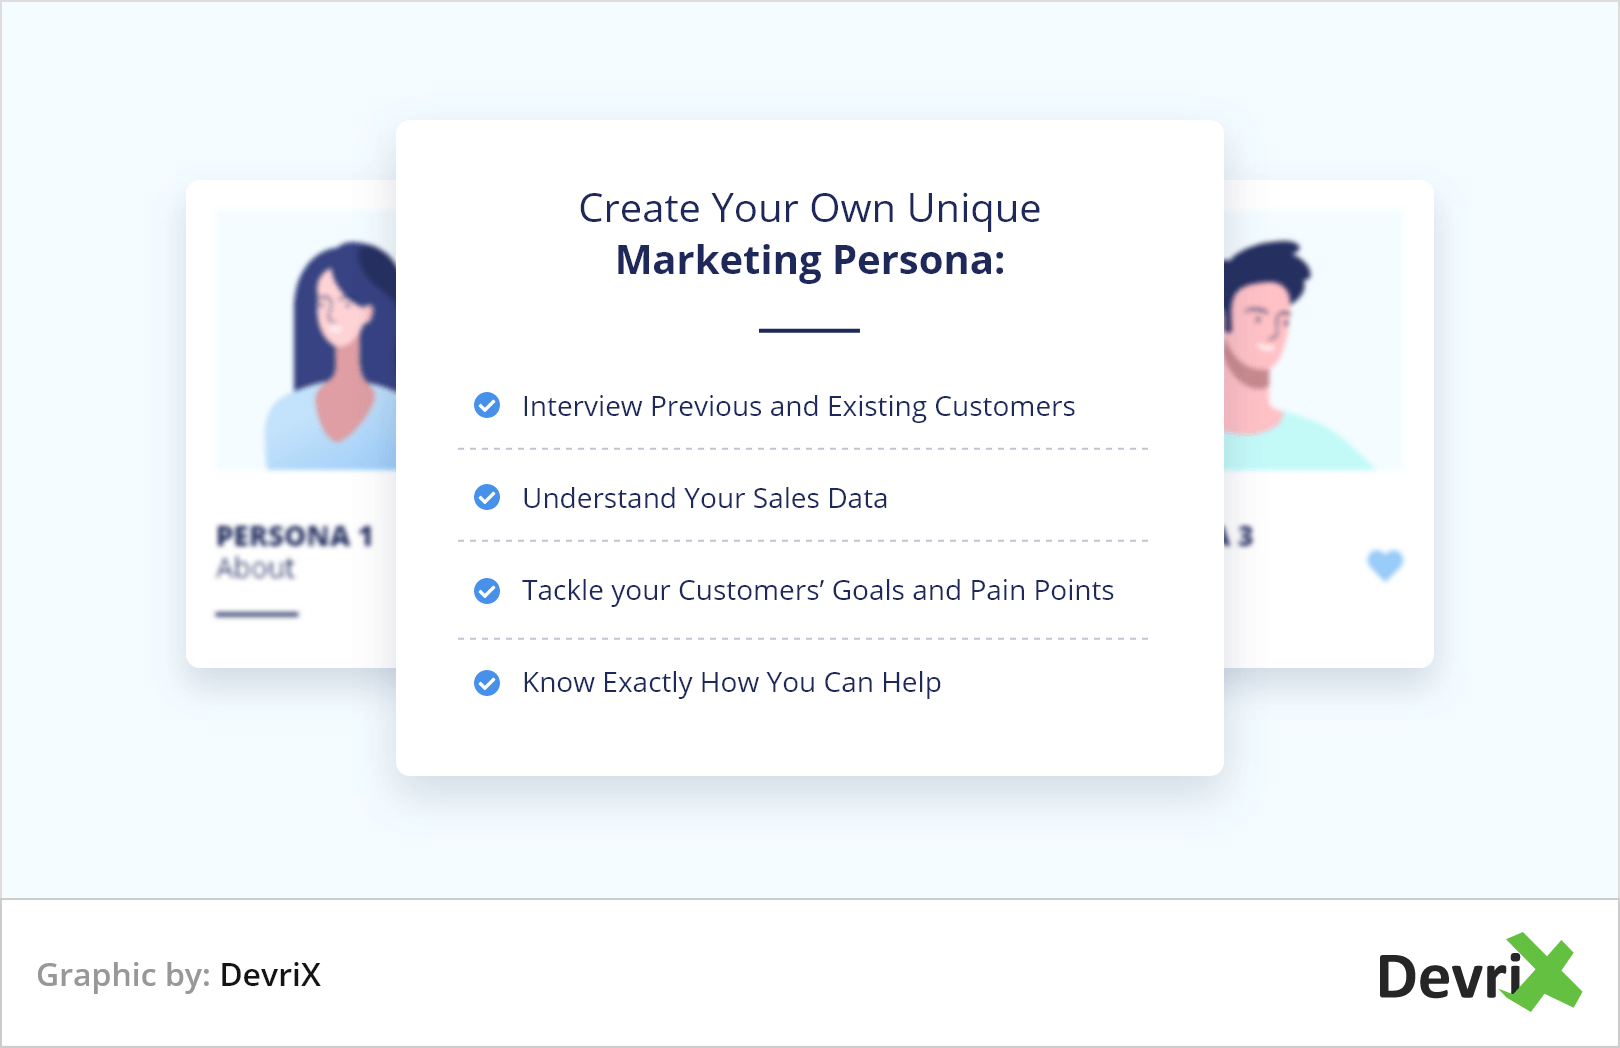 How to Create Your Own Unique Marketing Persona